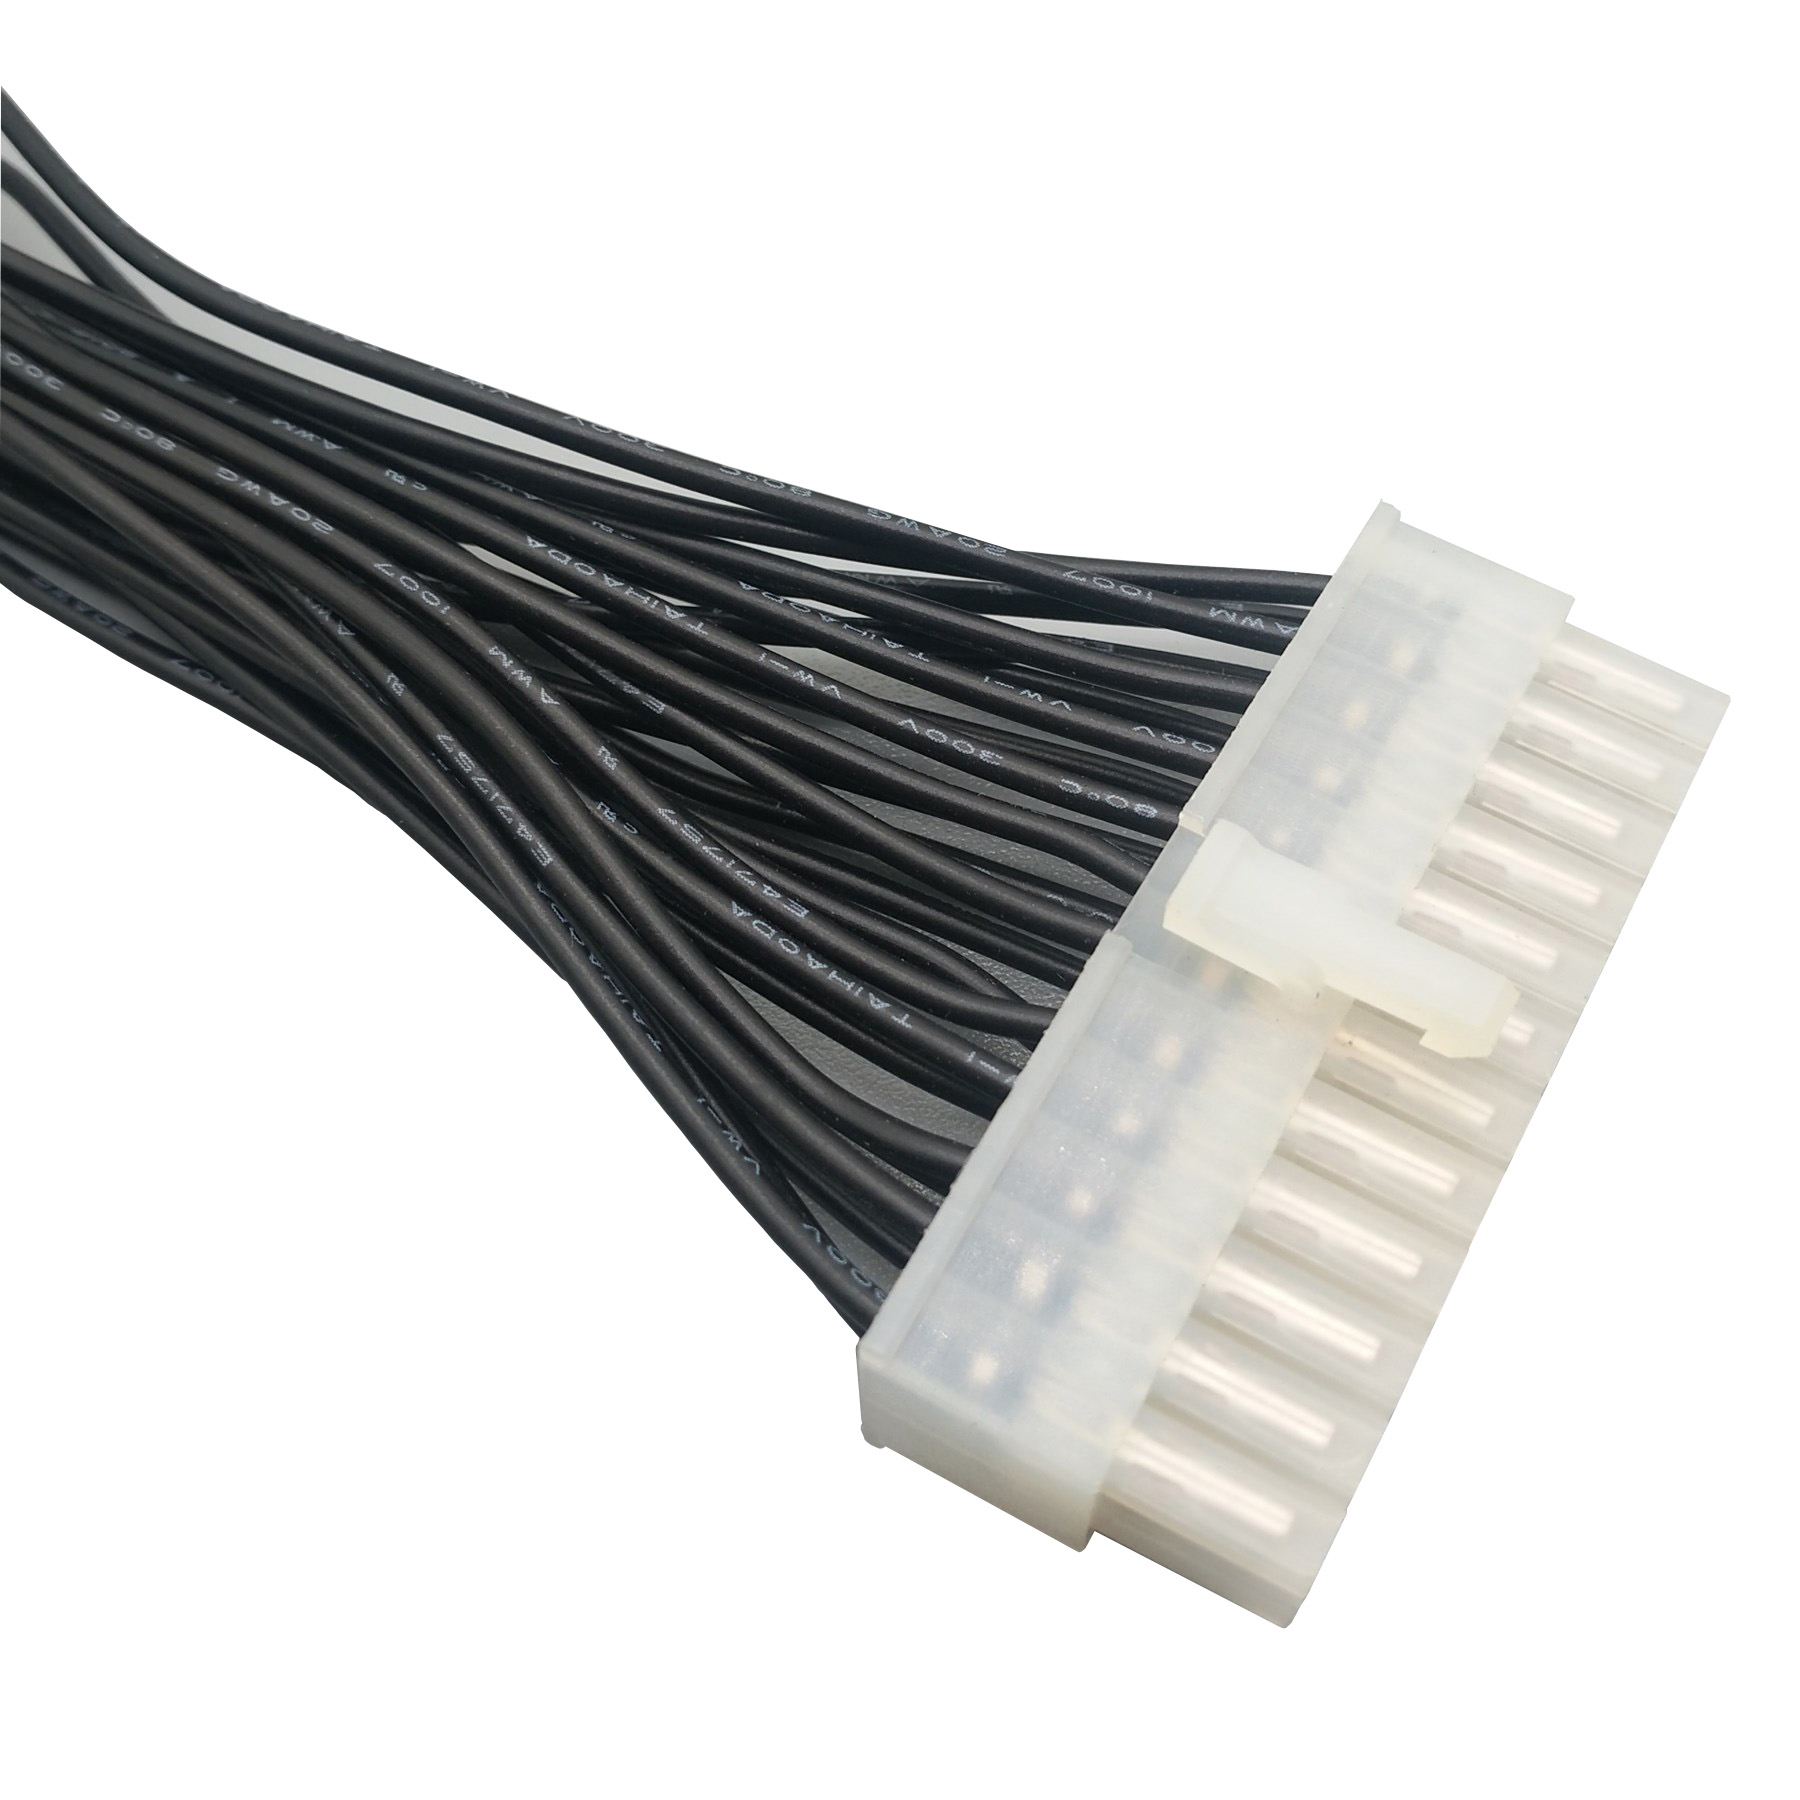 hight resolution of molex 2510 3 pin connector harness 2 54mm 12pin connector cable assembly